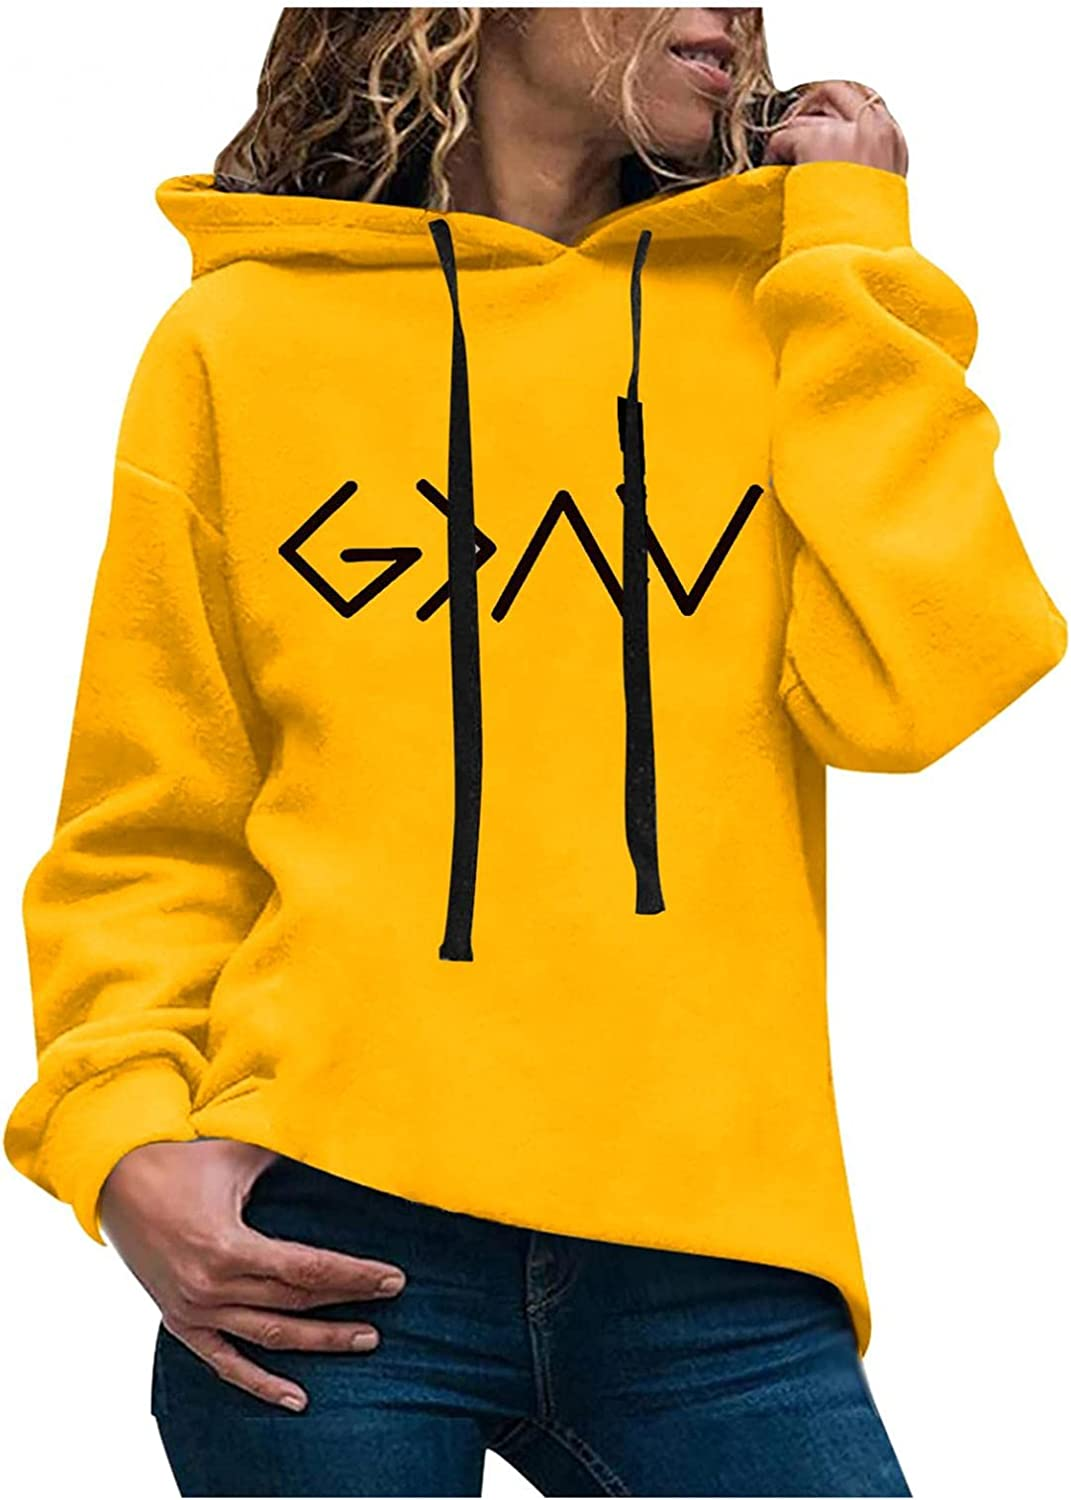 New products world's highest quality popular Qisemi Hooded Sweatshirts trend rank for Women Sweater Girls Teen H Graphic